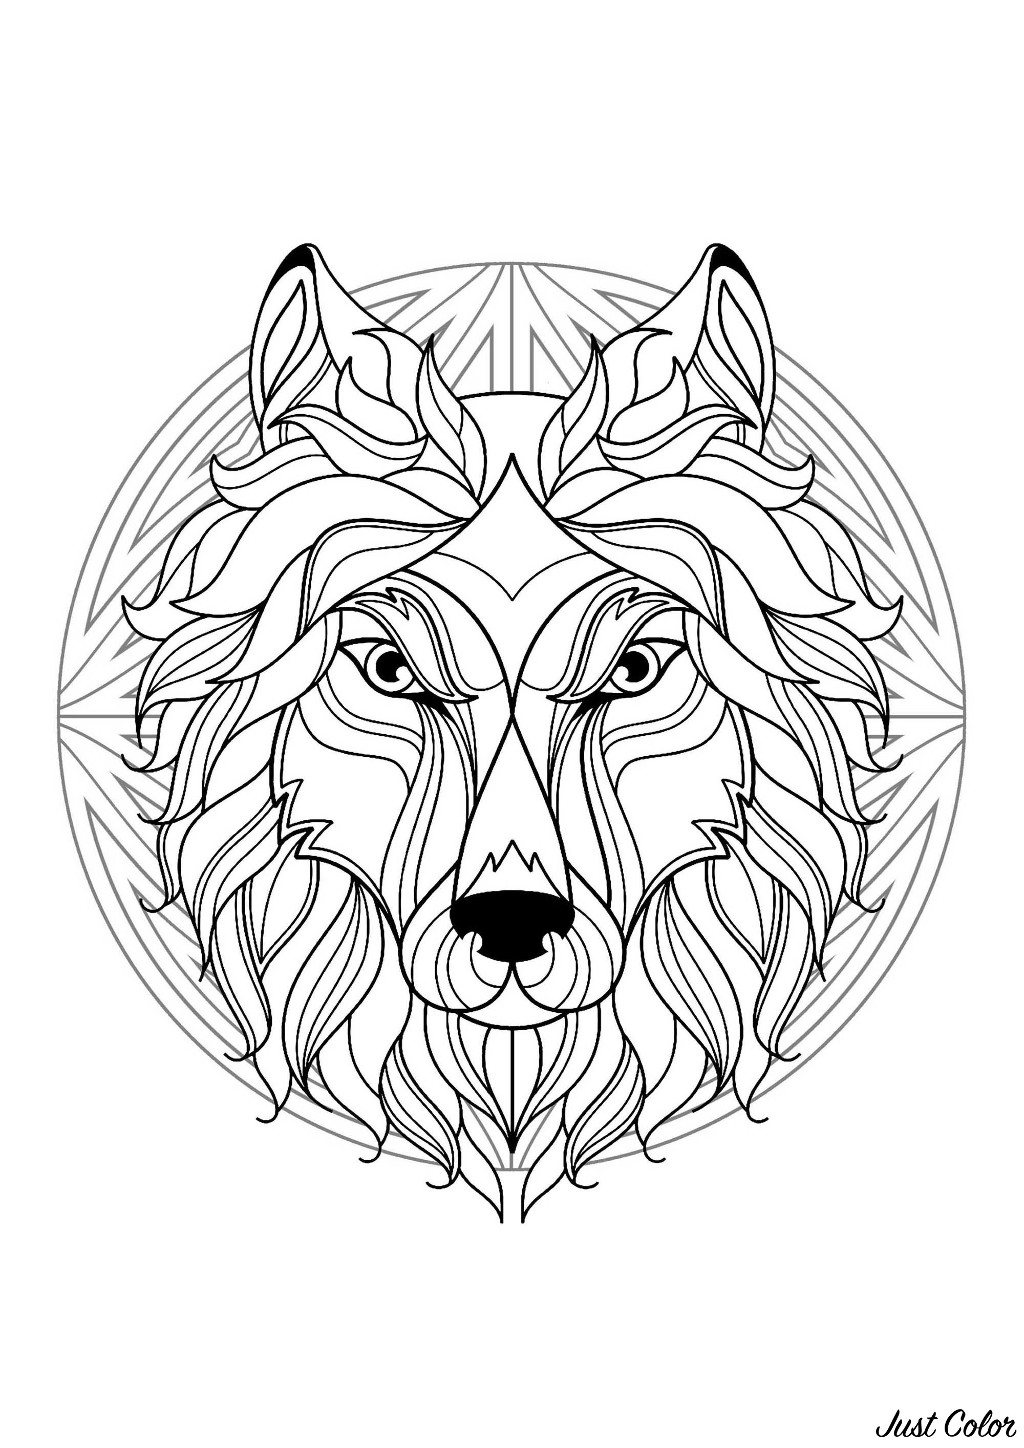 Complex Mandala Coloring Page With Wolf Head 1 Difficult Mandalas